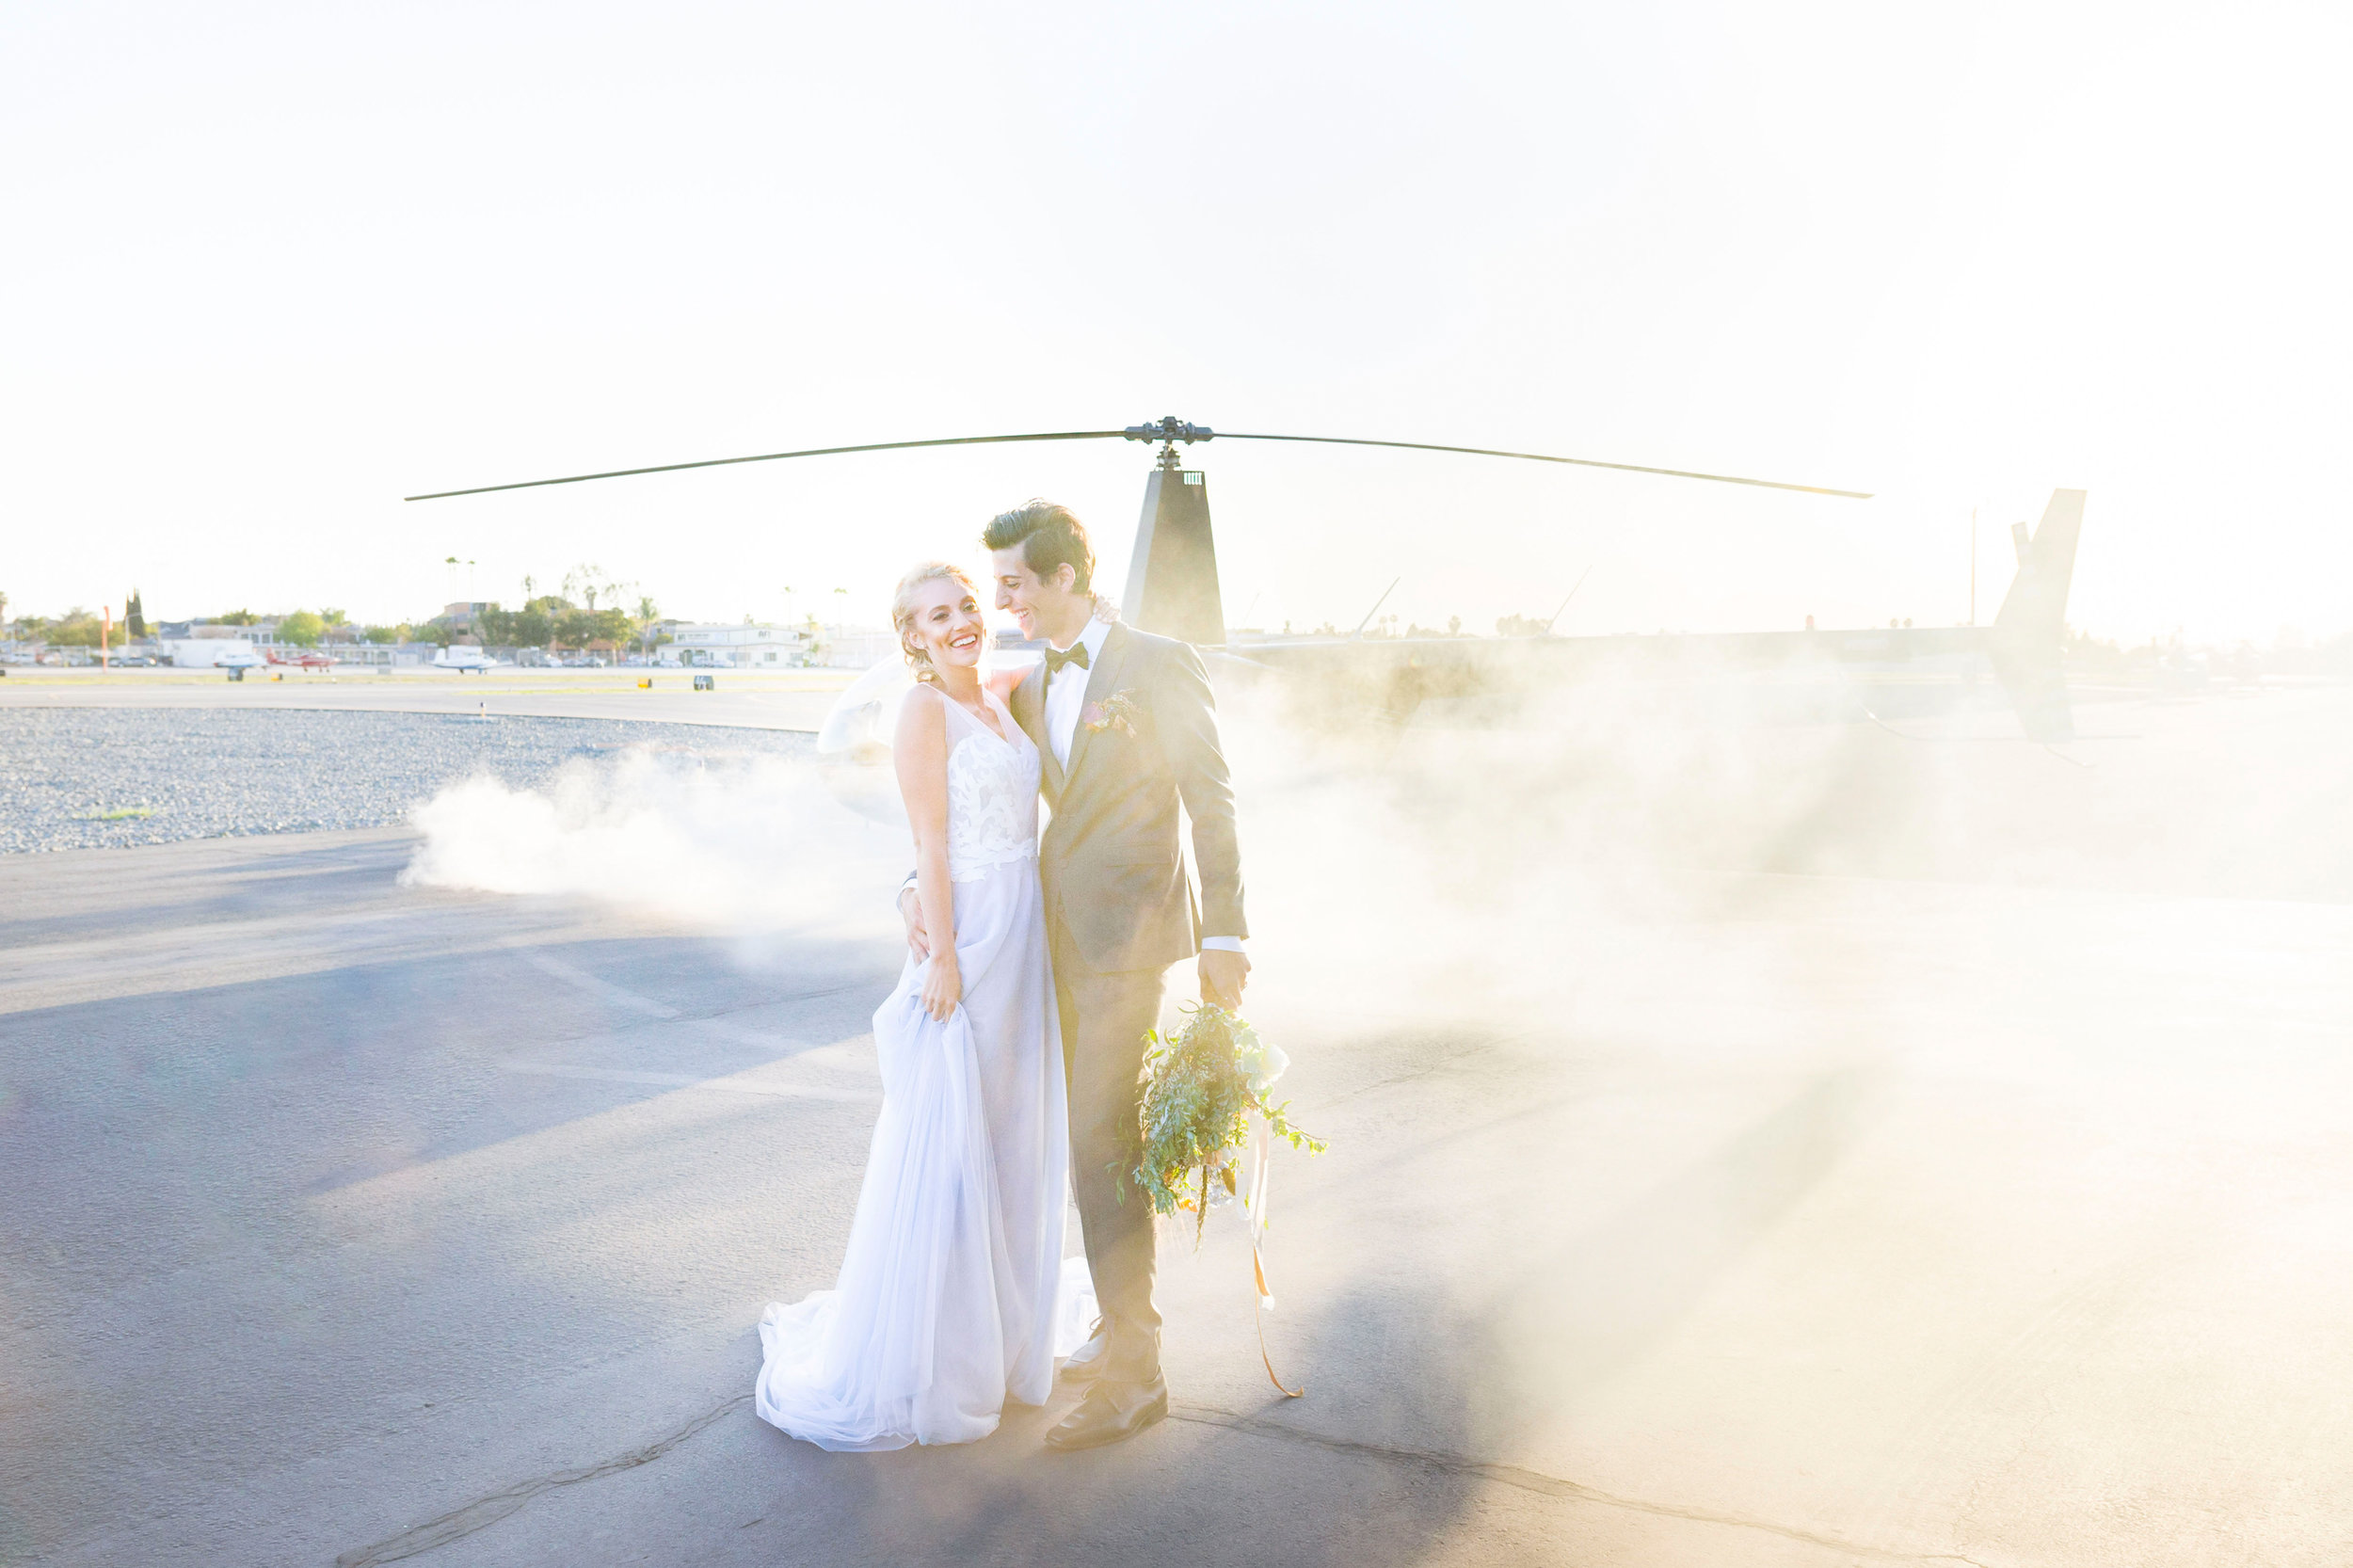 hangar wedding bride and groom.jpg